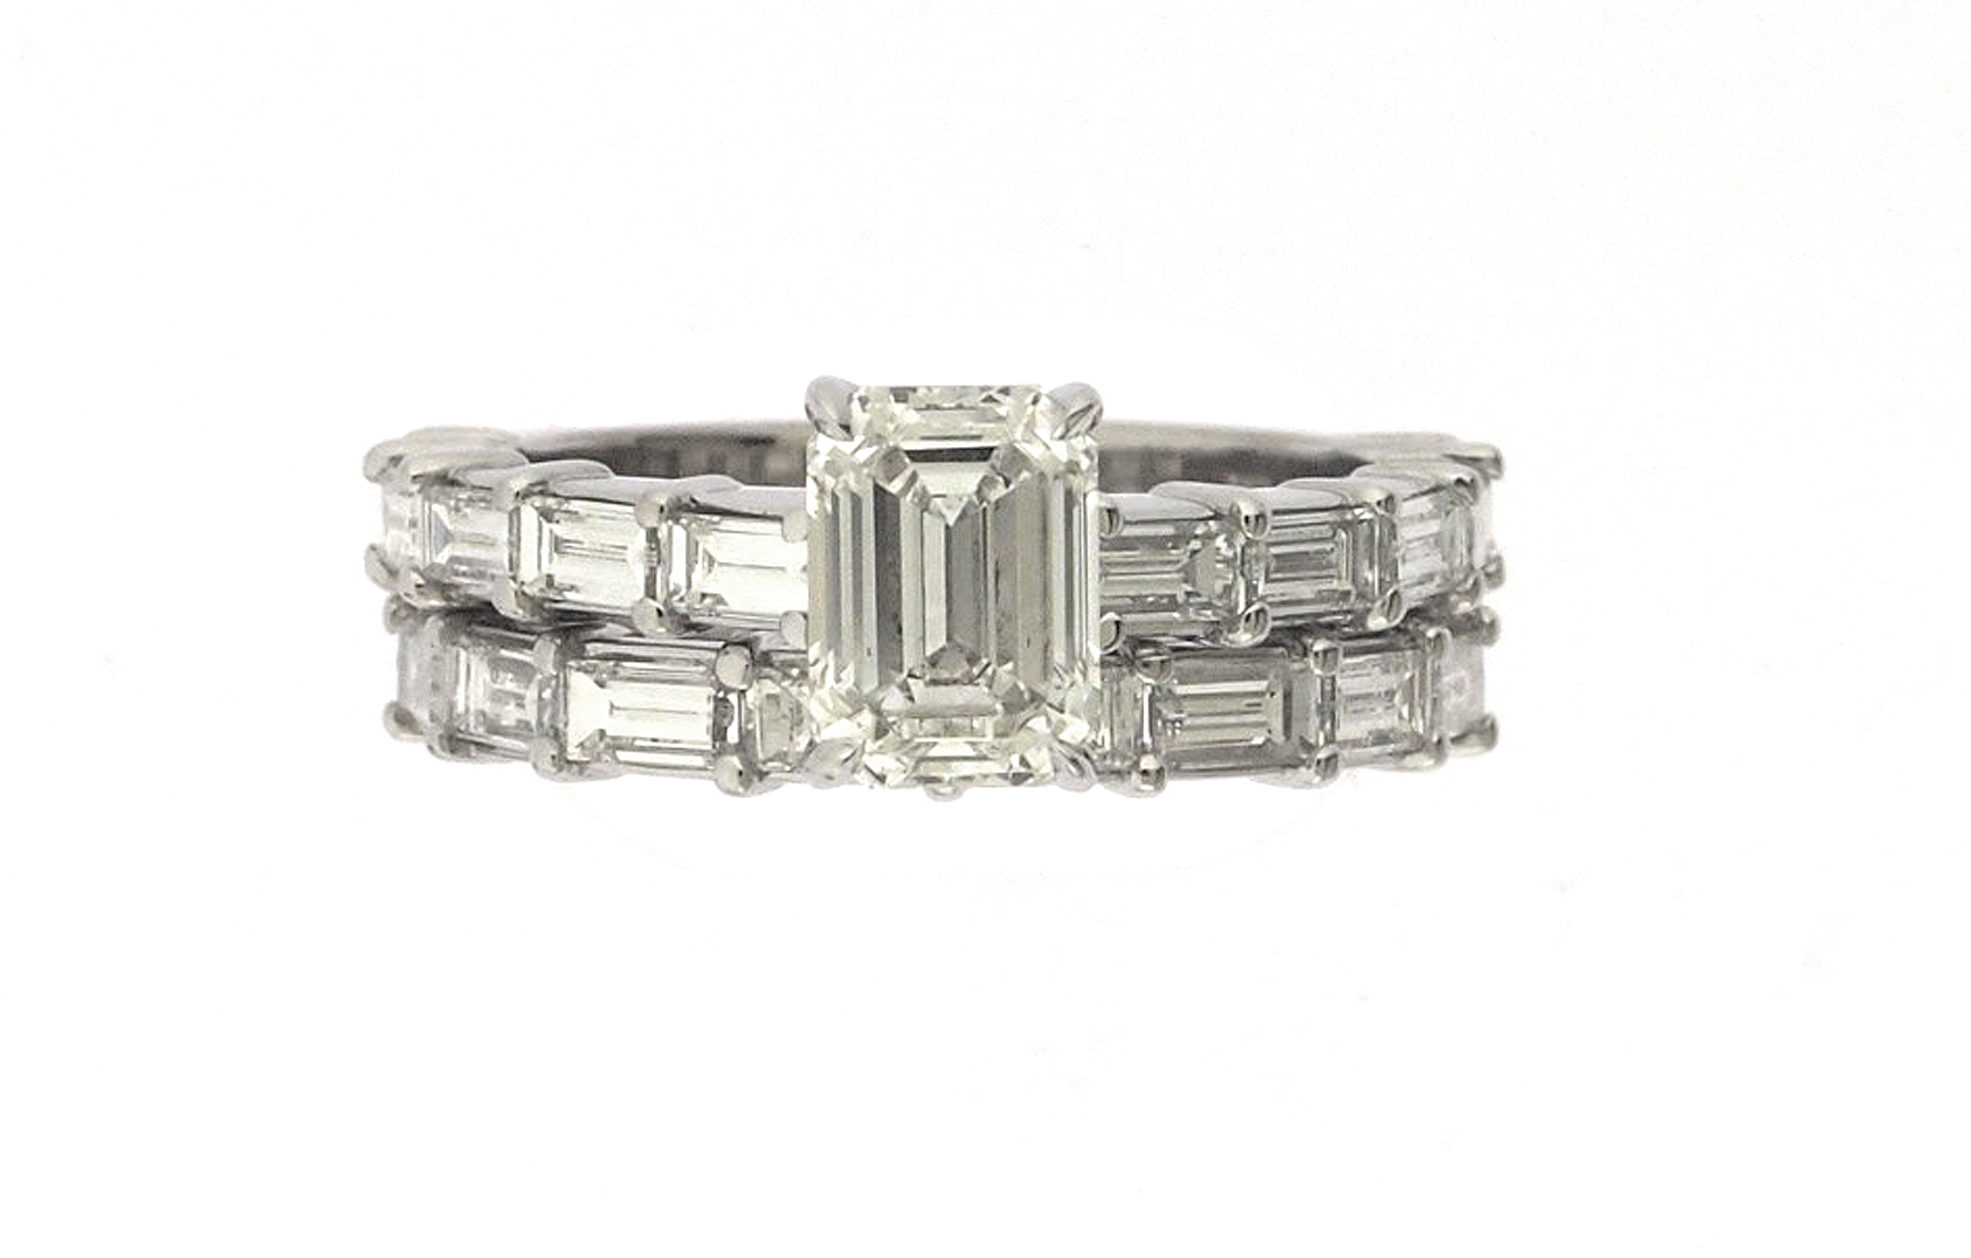 bands s and pin platinum vintage wedding retro diamond band baguette round